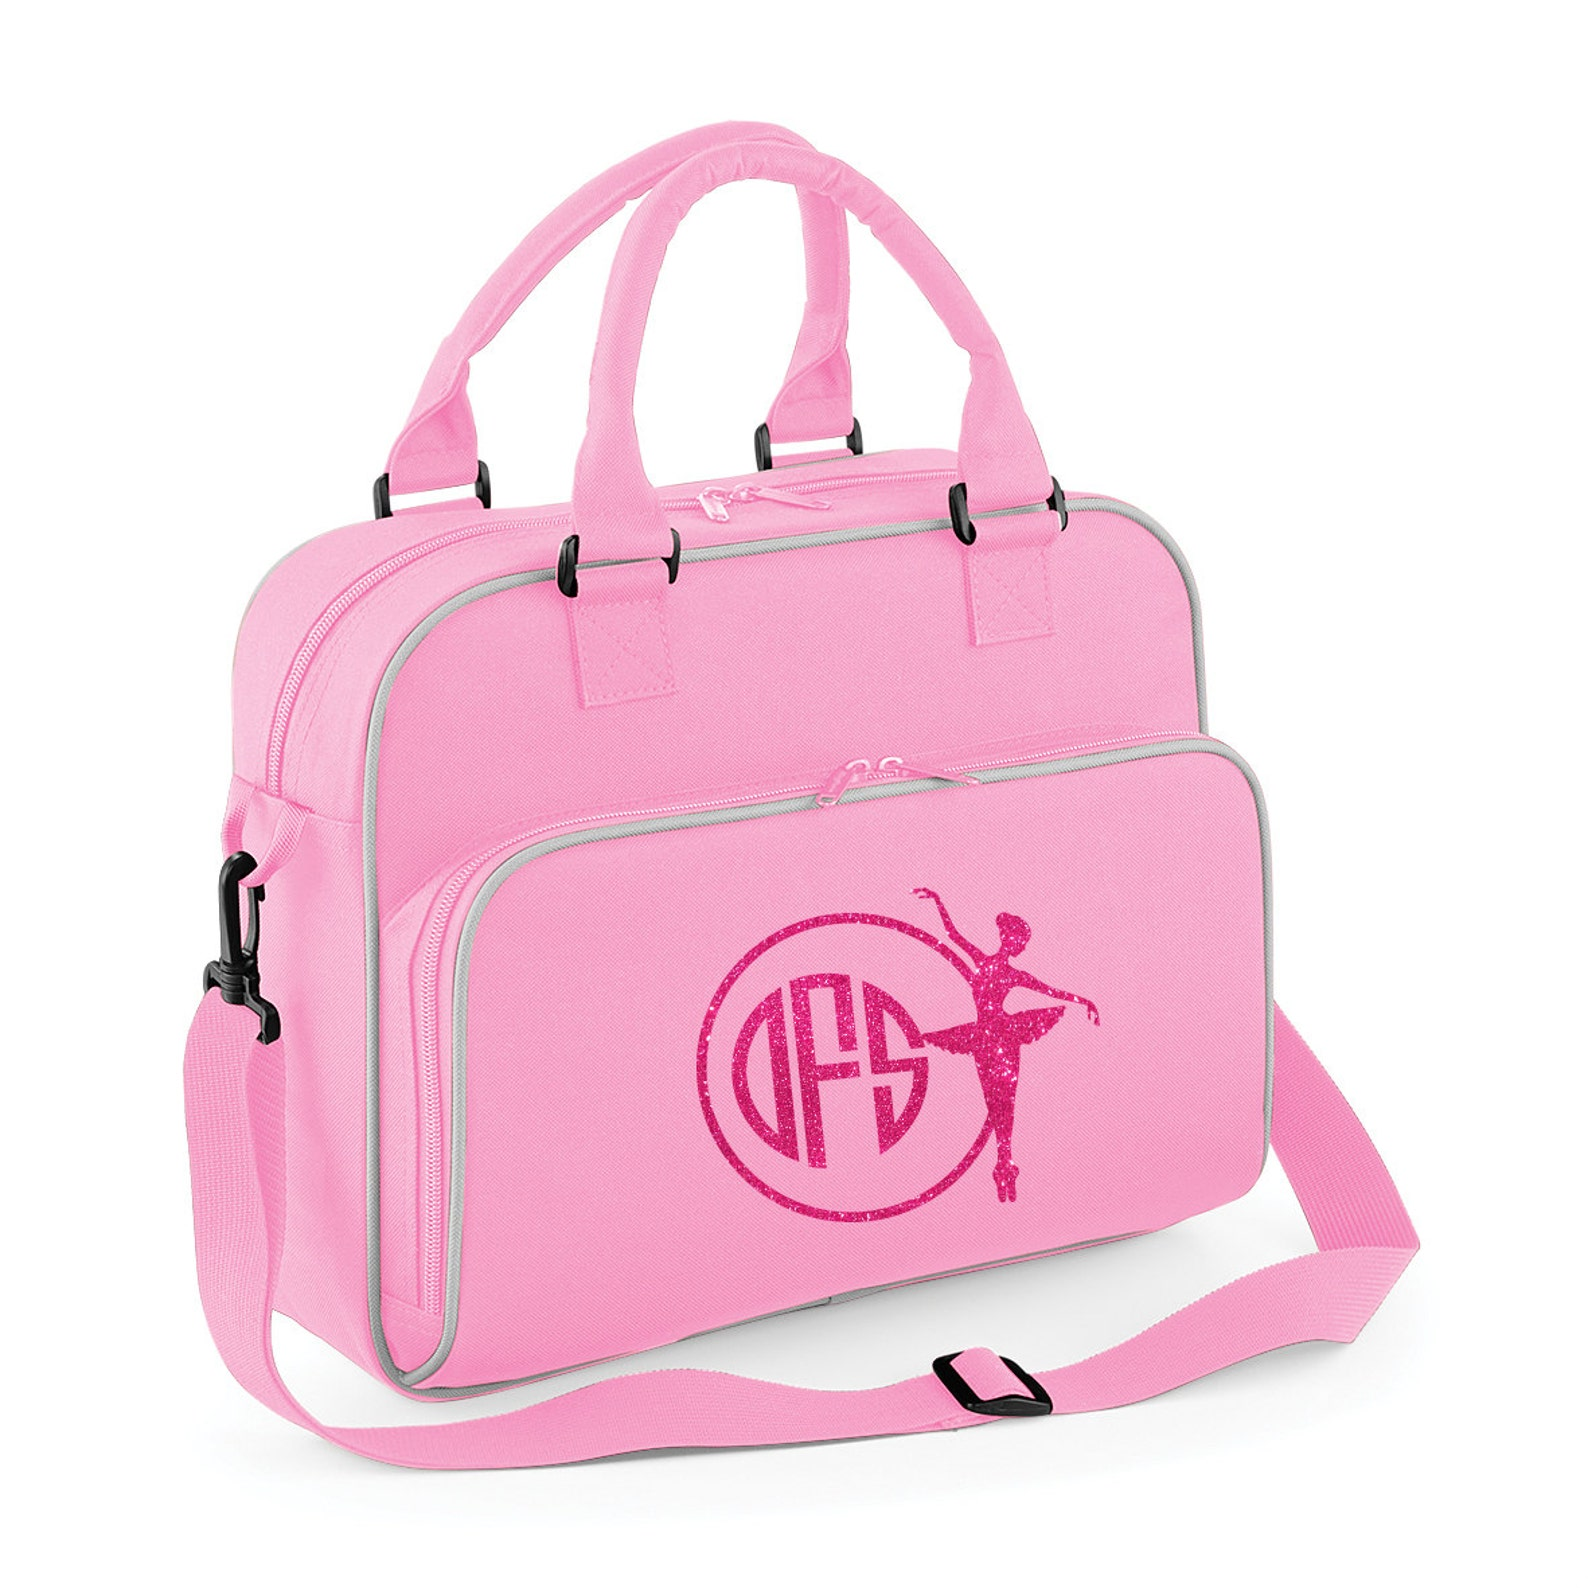 personalised junior ballet dance bag- glitter print with ballet image and monogram name- image 3